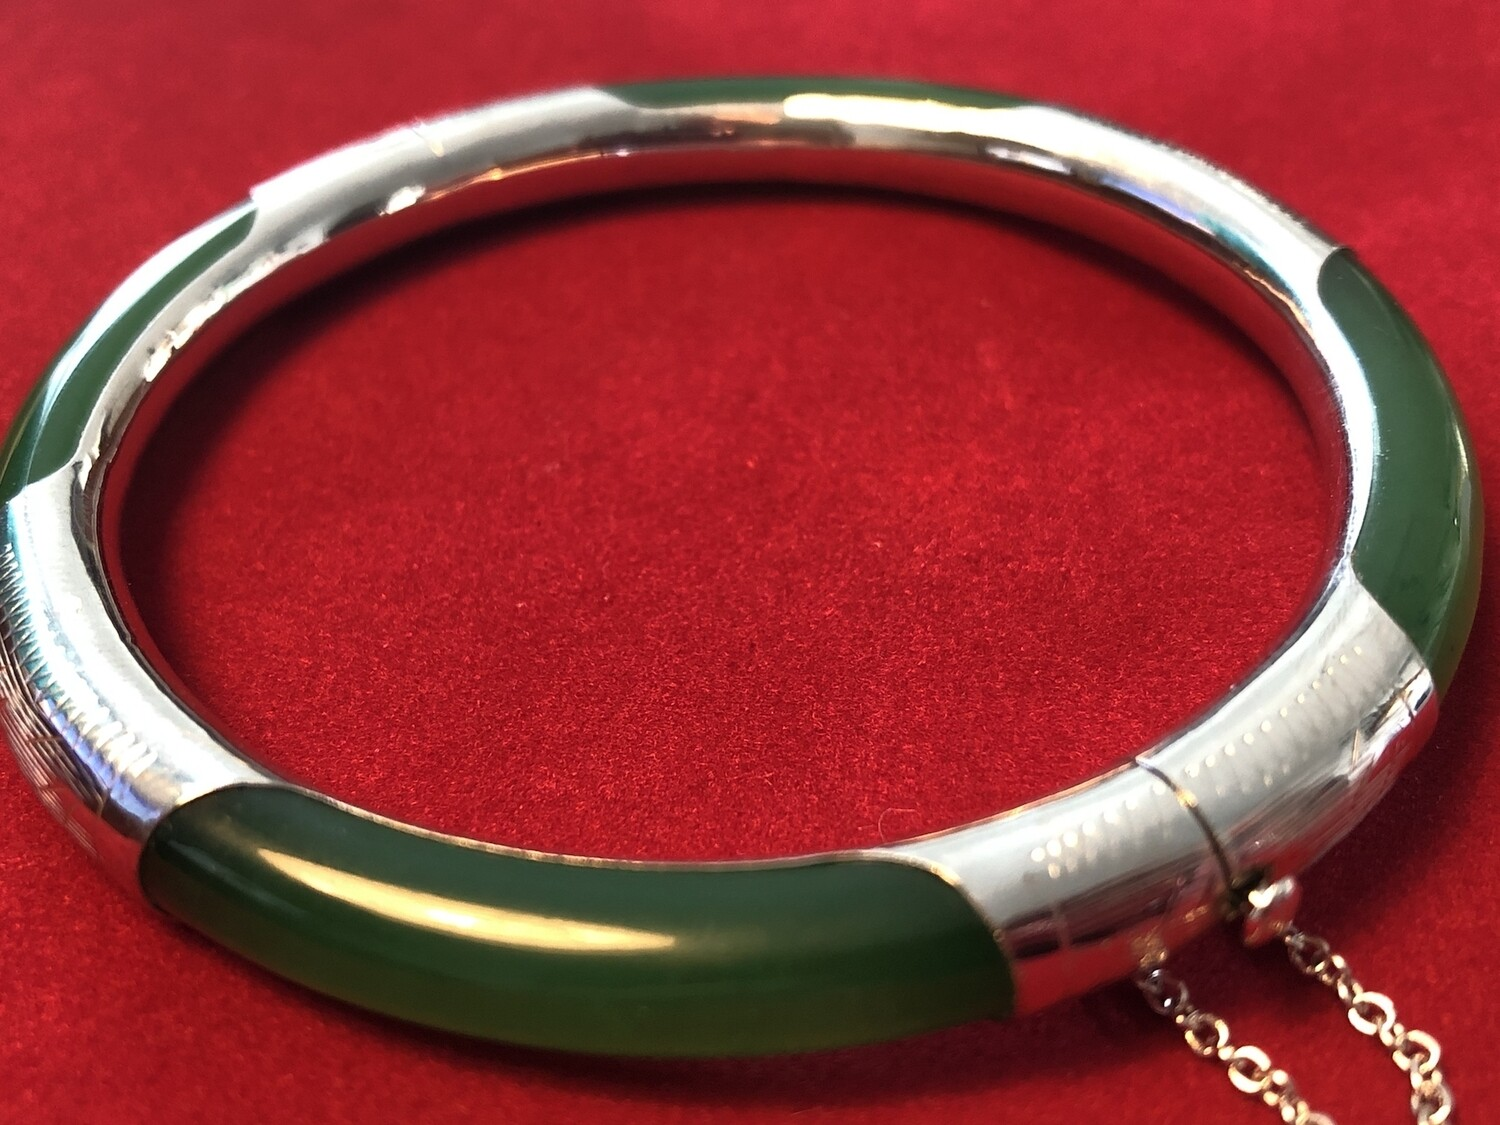 Silver and Jade Bangle/Bracelet - stunning